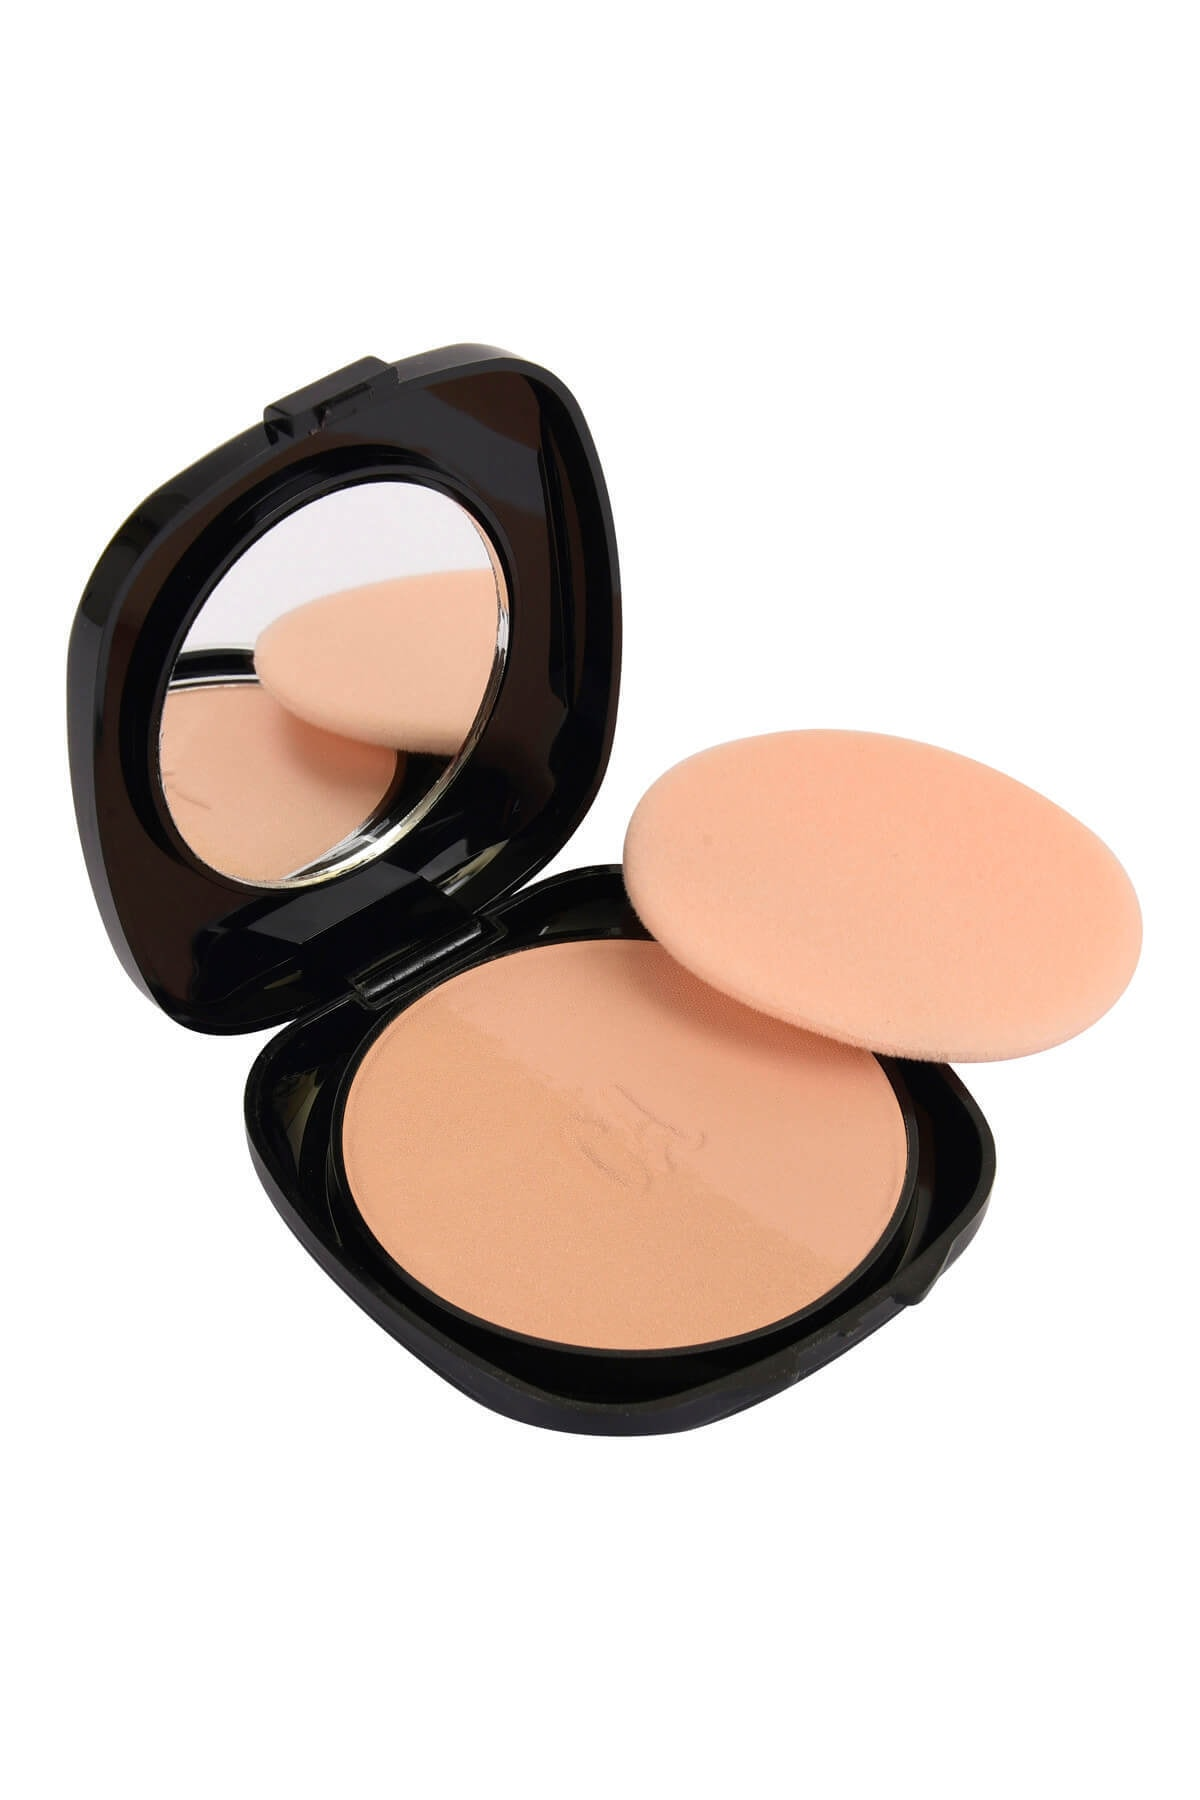 Catherine Arley Pudra - Compact Powder 6,5 8691167436355 1